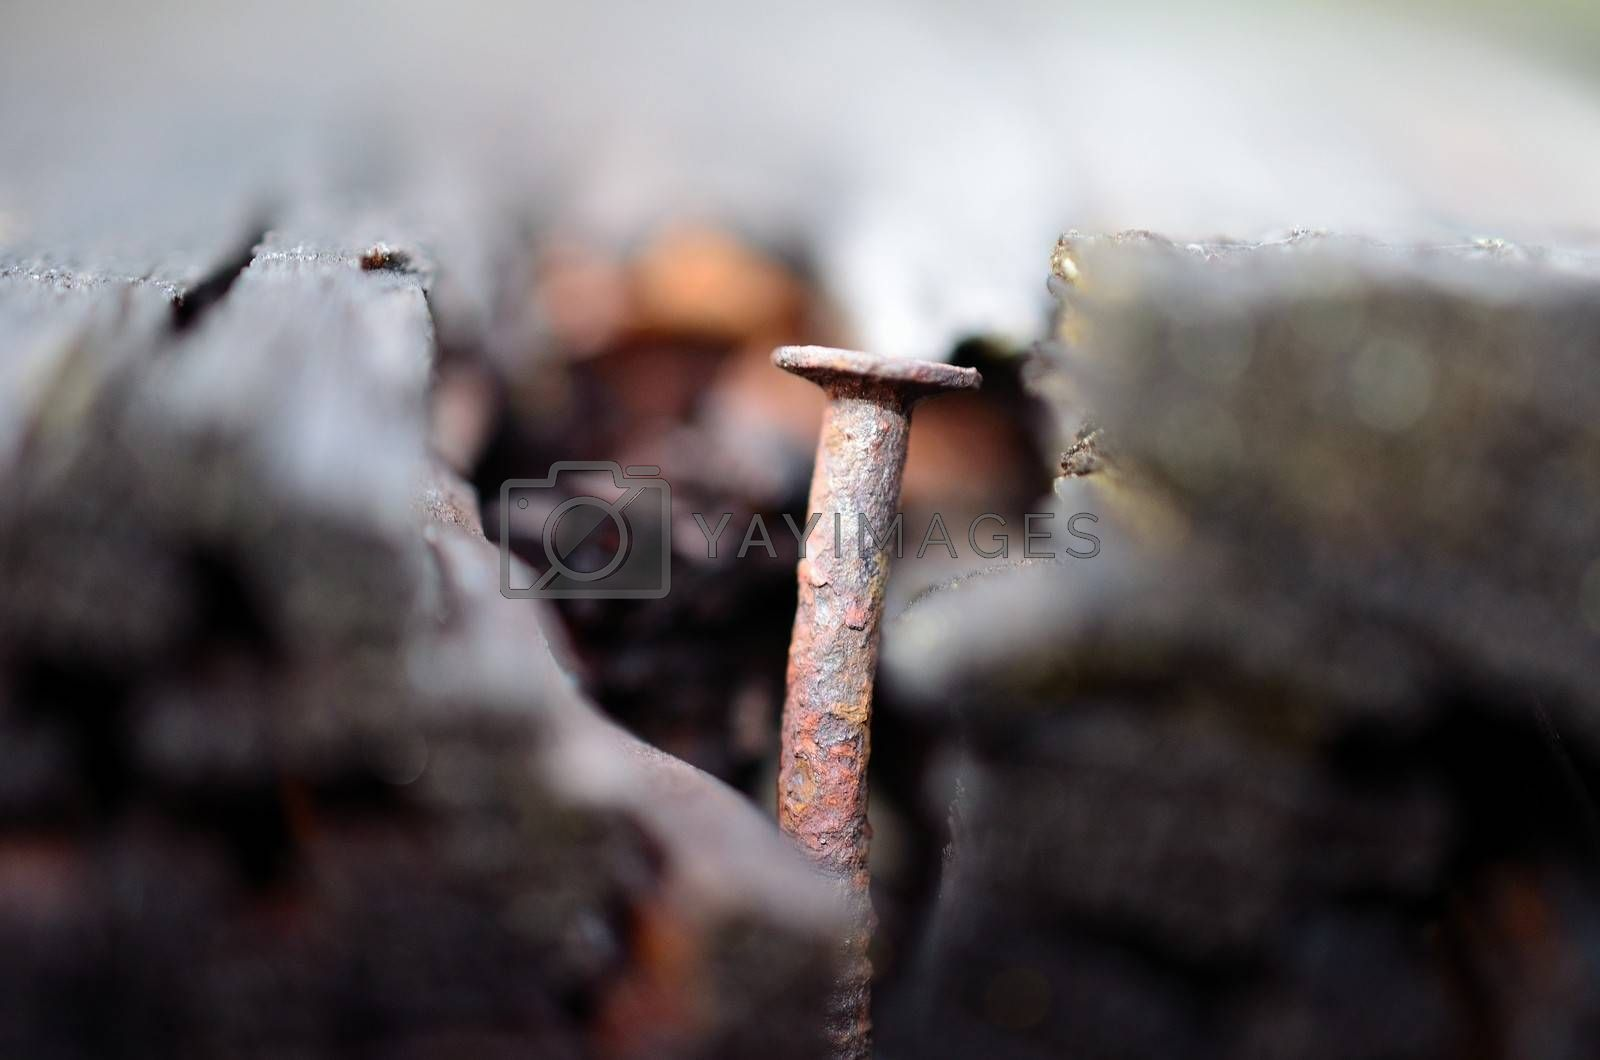 Royalty free image of Really old nail in a rotten log by Finephotoworks